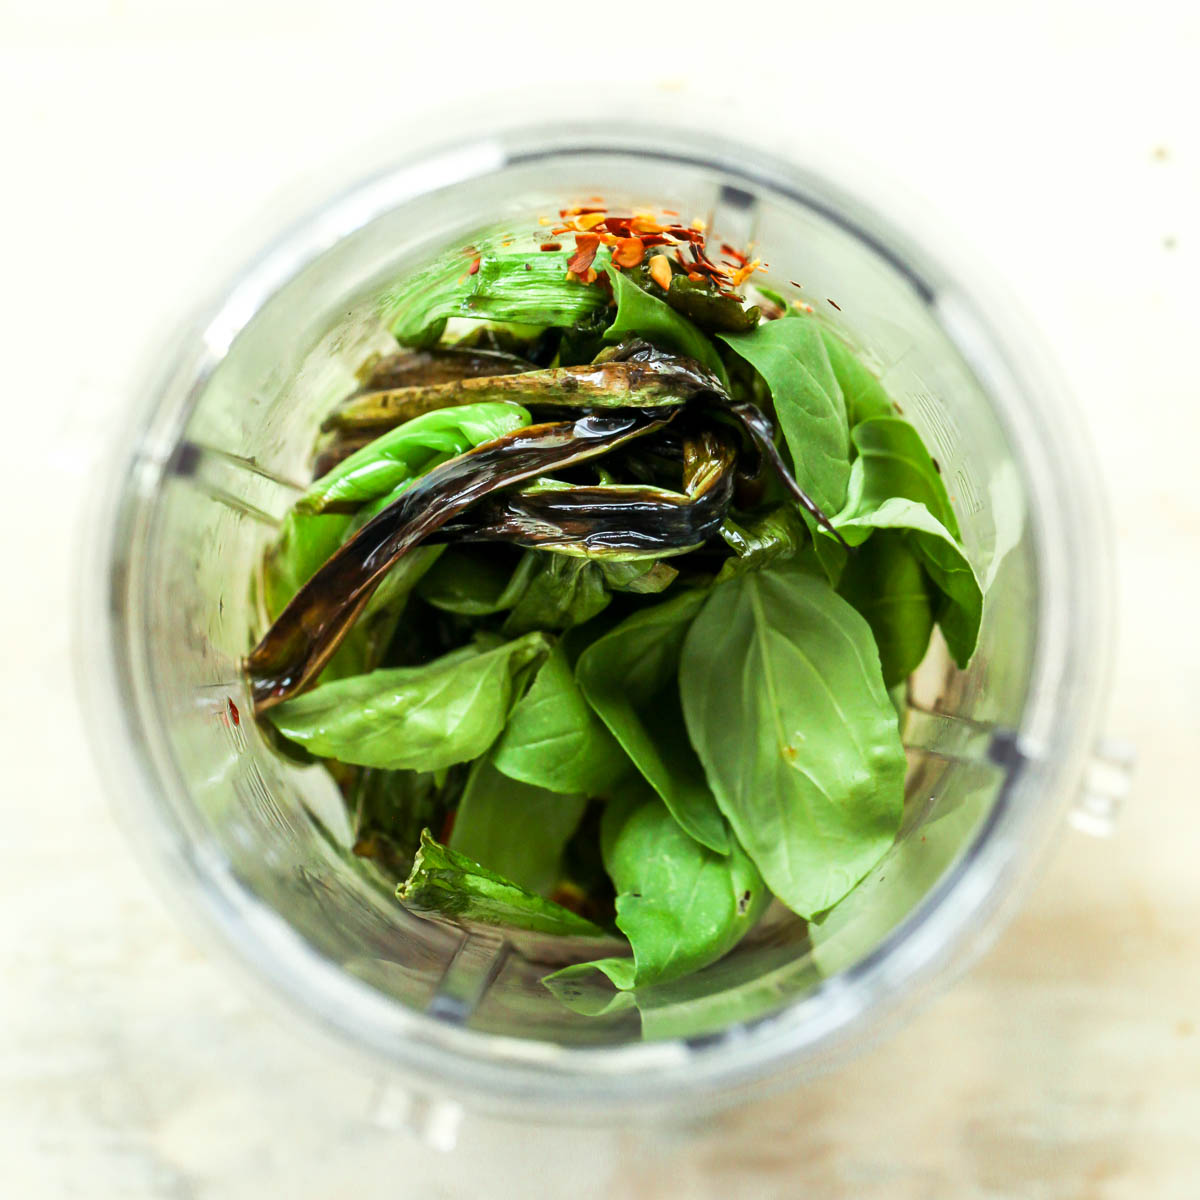 Basil, scallions, red pepper flakes, and olive oil in a mini blender